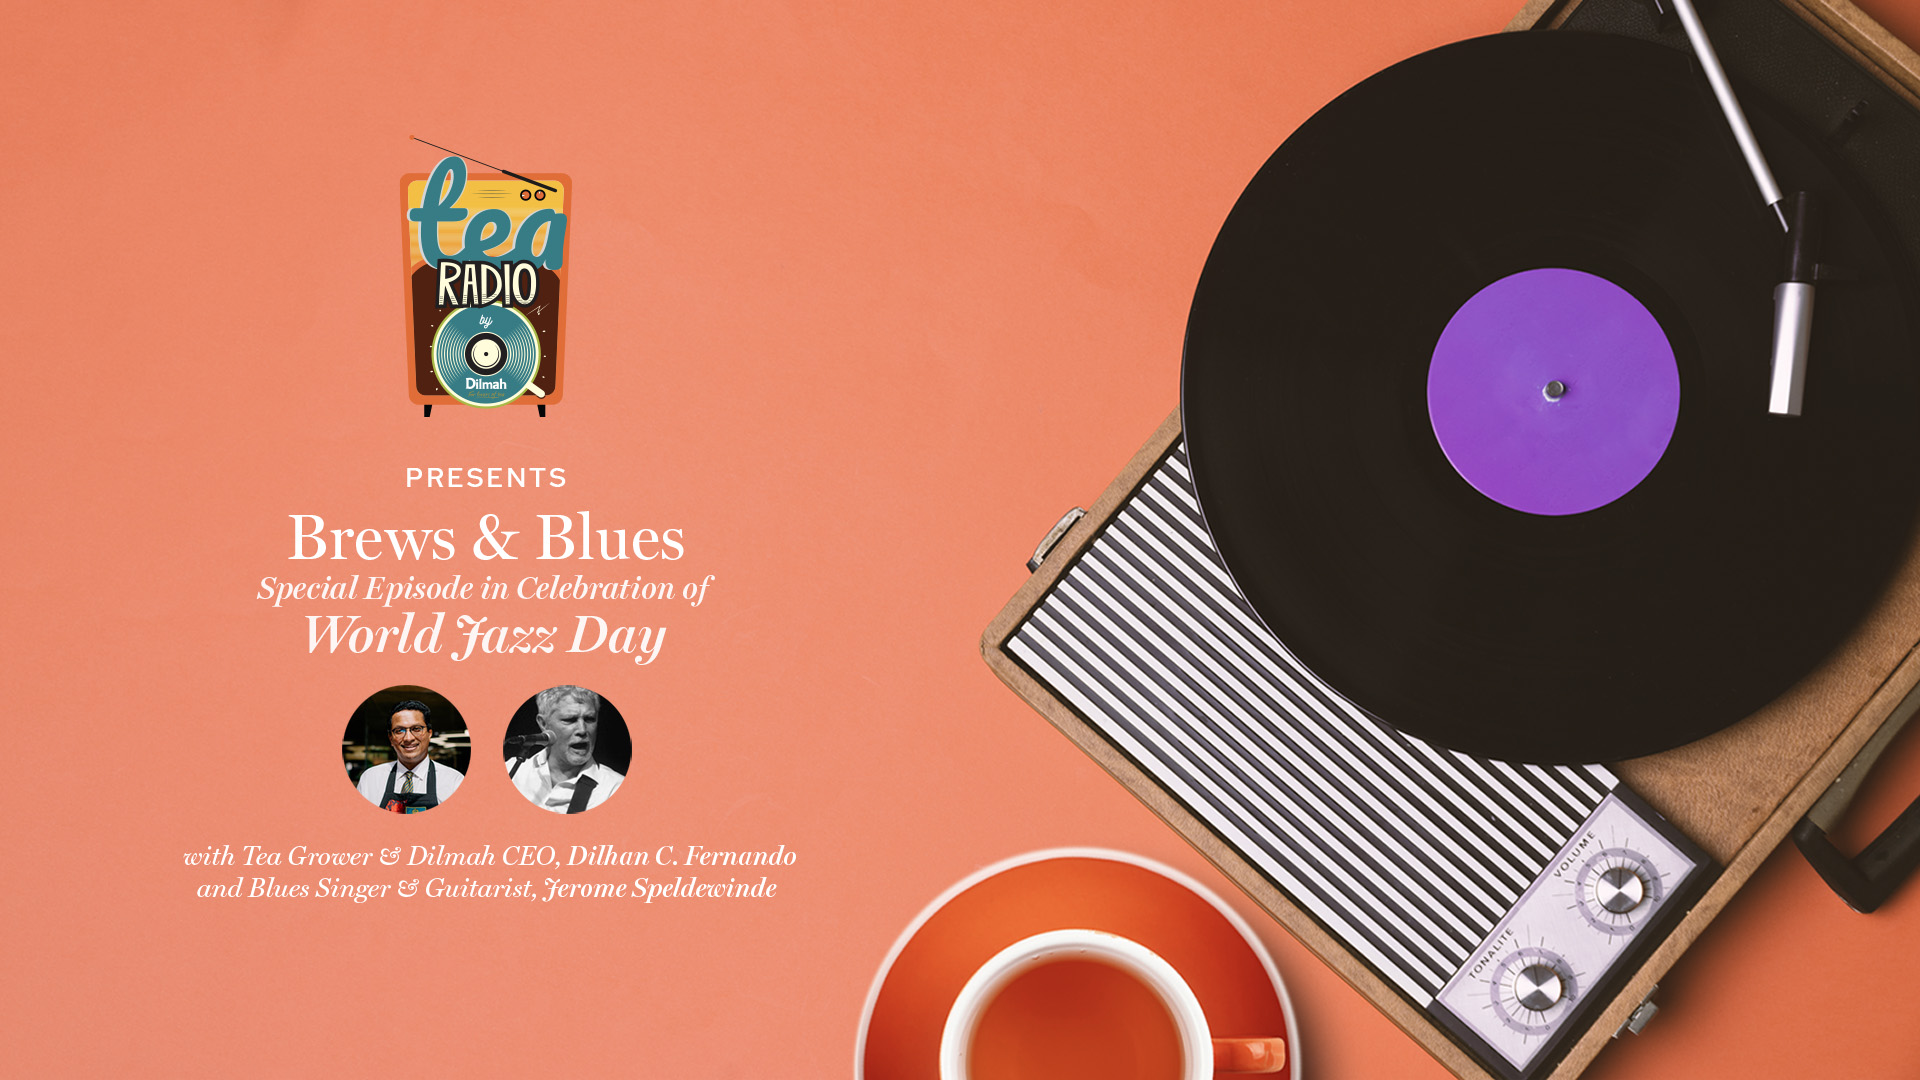 Brews & Blues - A Special Episode in Celebration of World Jazz Day - 28 mins